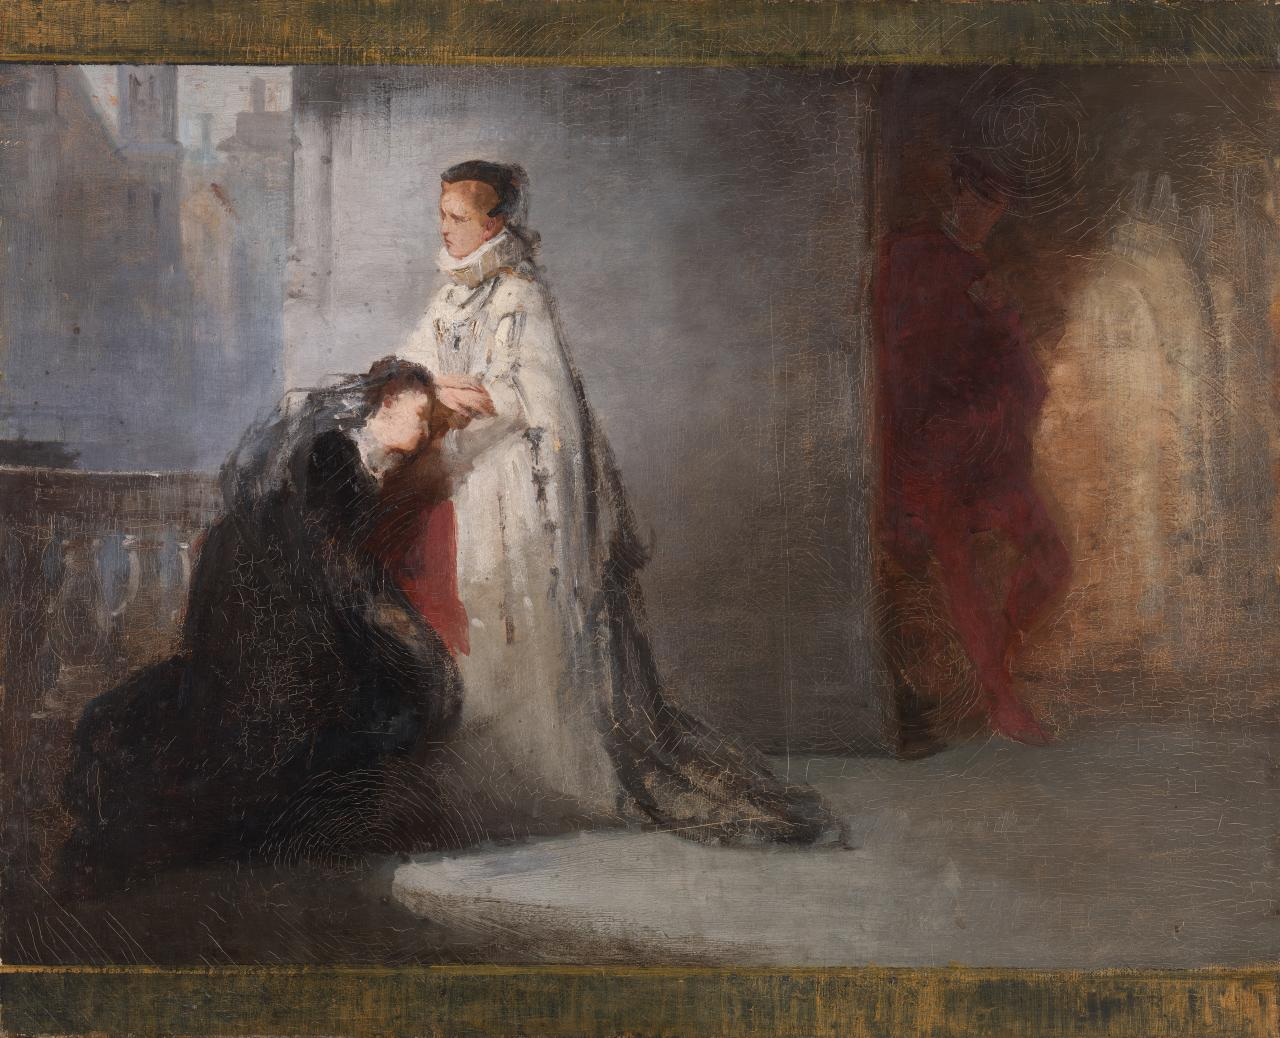 Study for picture of Mary Queen of Scots